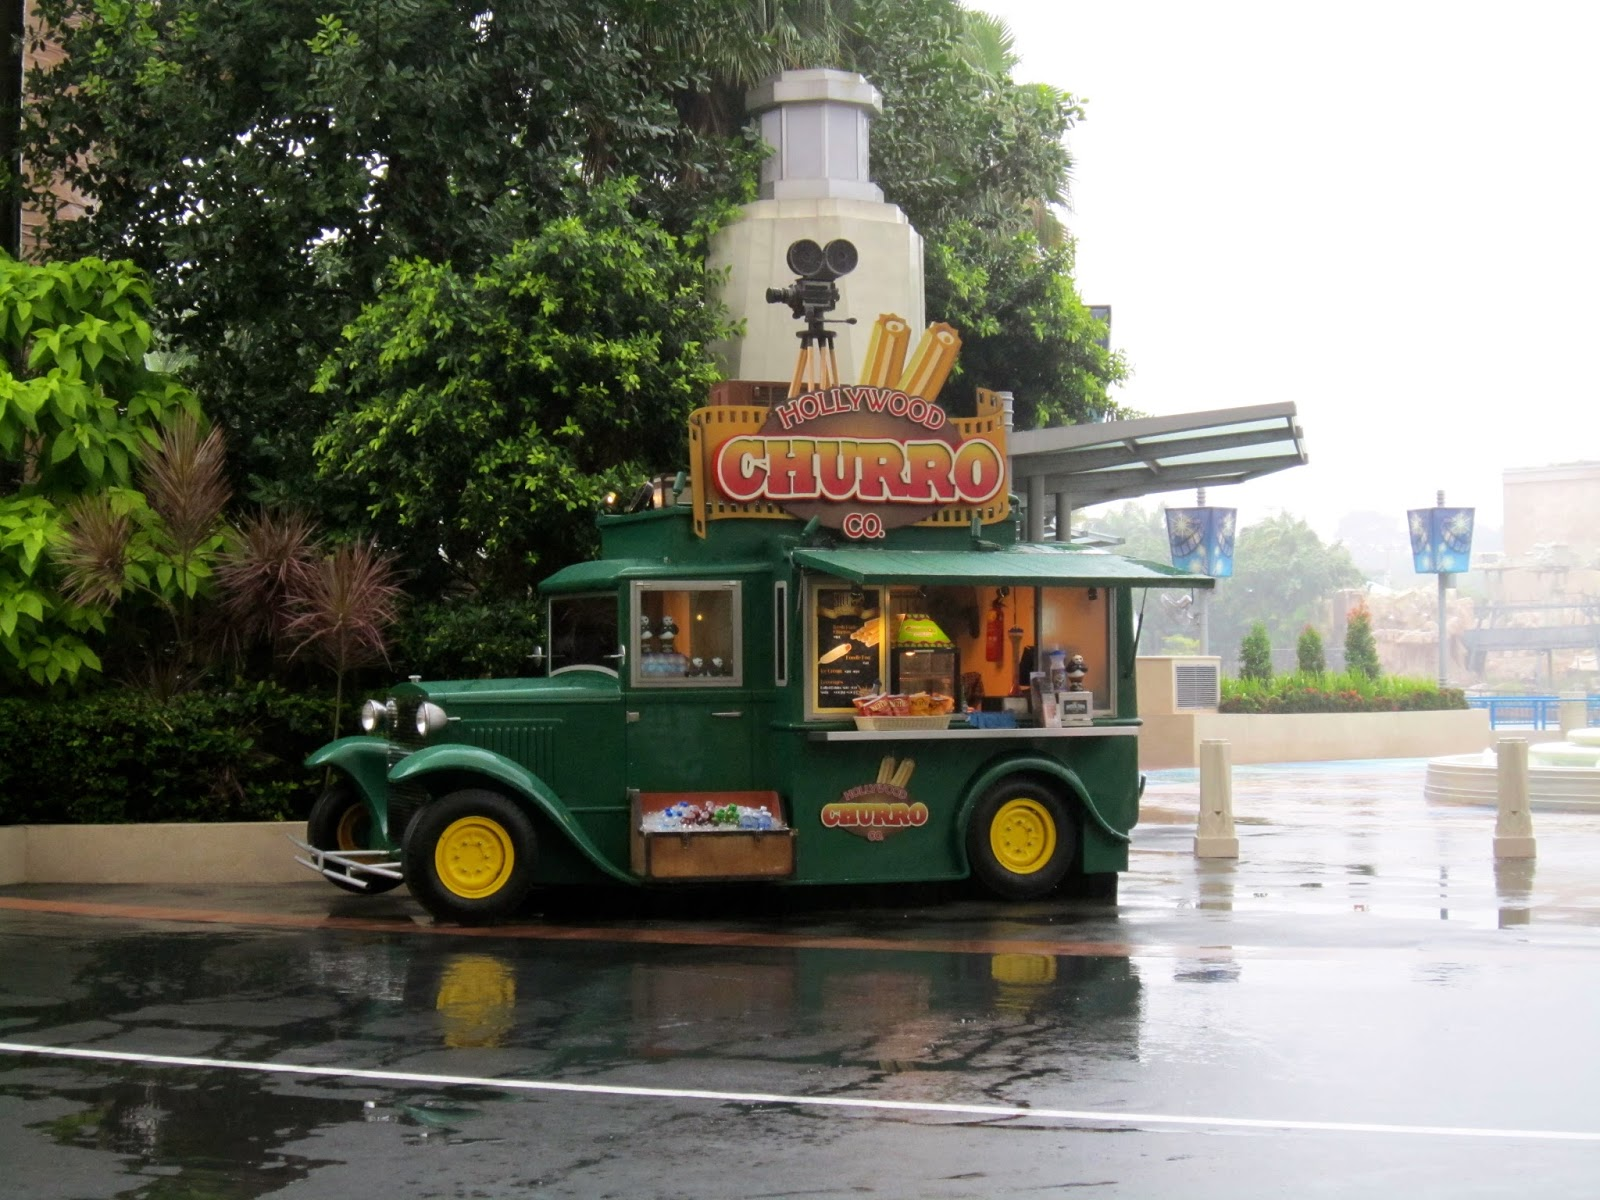 Hollywood CHURRO Truck